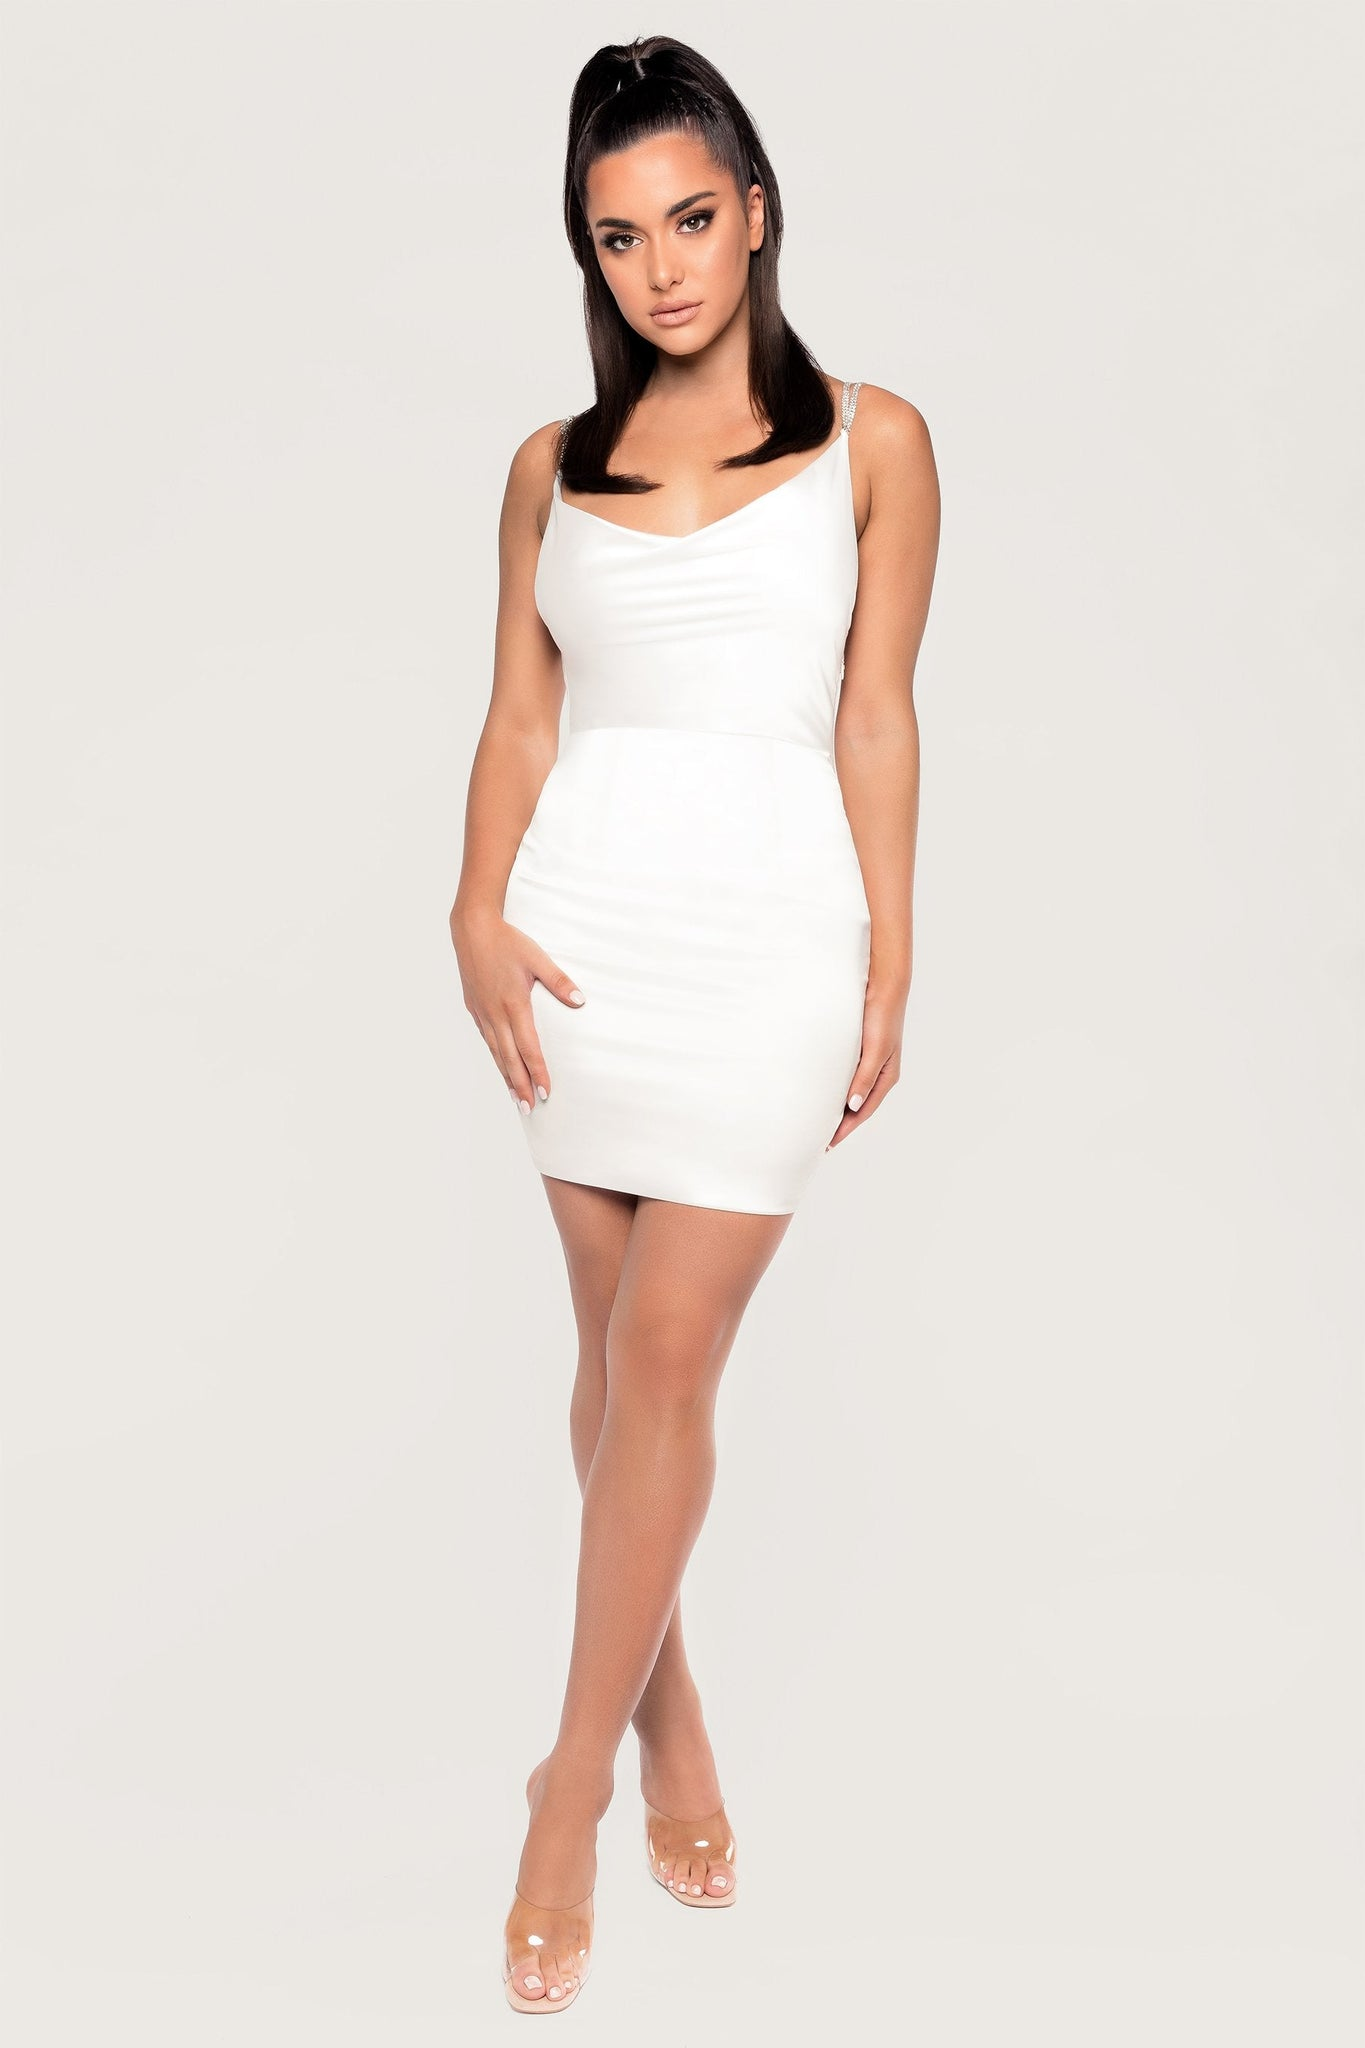 Hollie Cowl Diamante Mini Dress - Cream - MESHKI